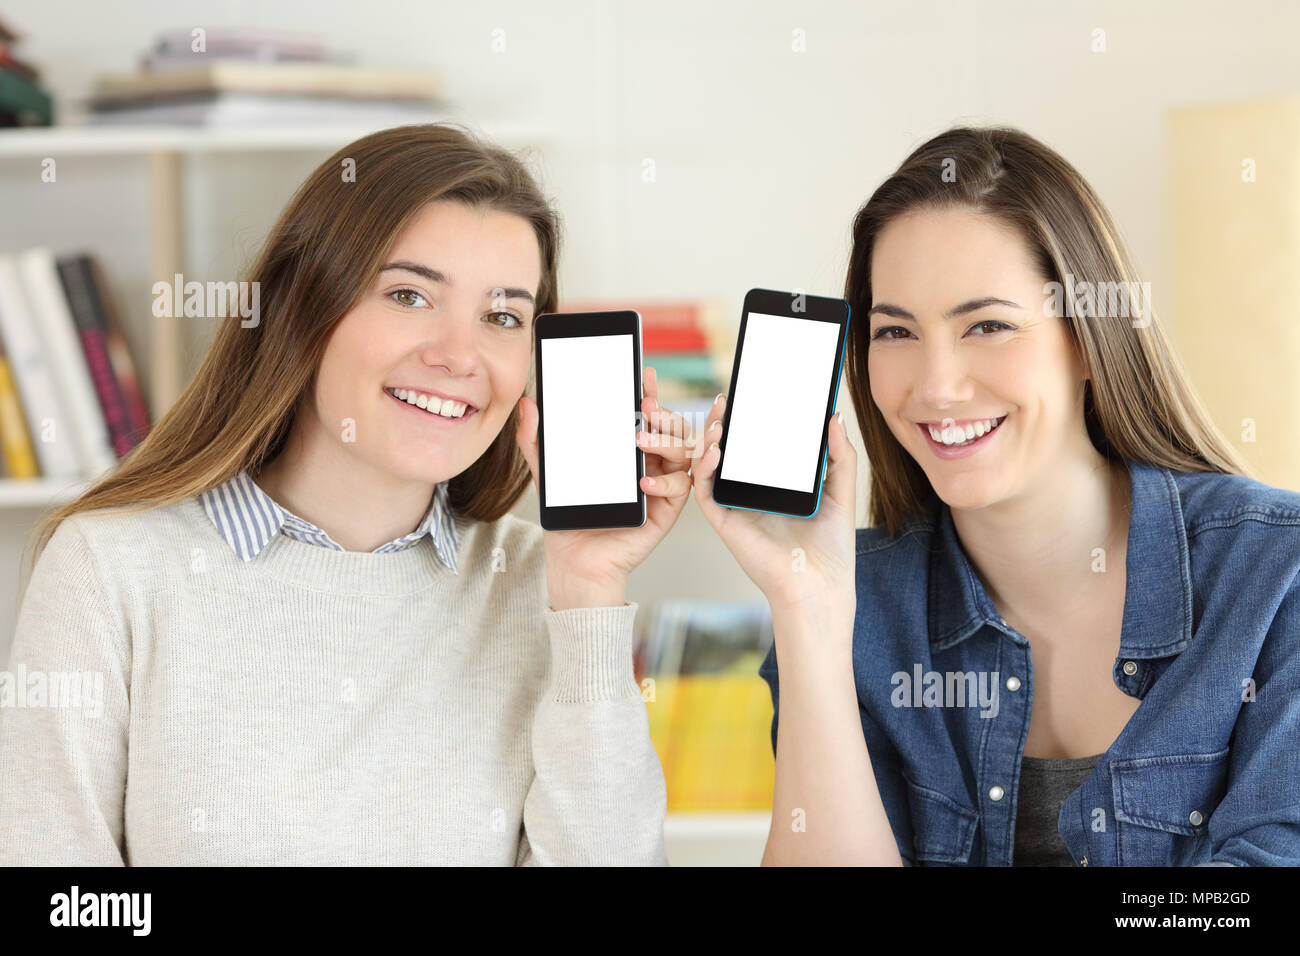 Front view portrait of two happy students showing to camera smart phone screens mockup - Stock Image